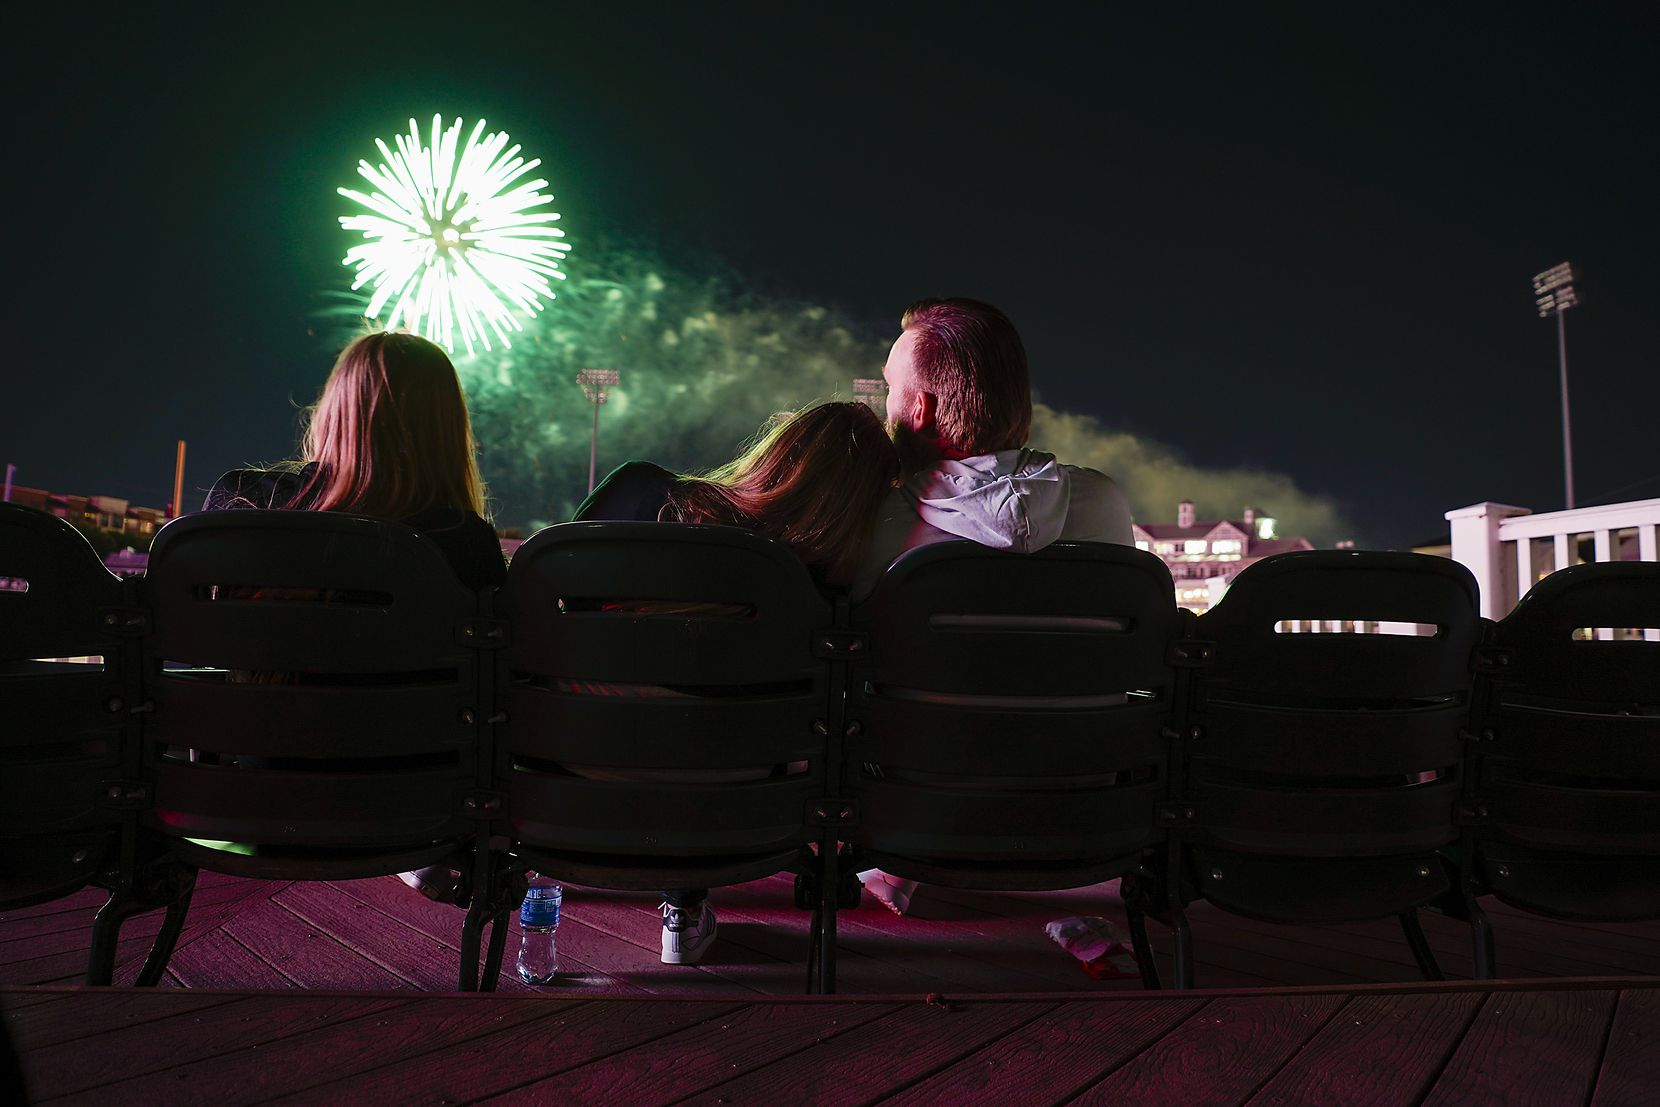 Fans watch the post game fireworks after the Frisco RoughRiders game at Riders Field. (Smiley N. Pool/The Dallas Morning News)